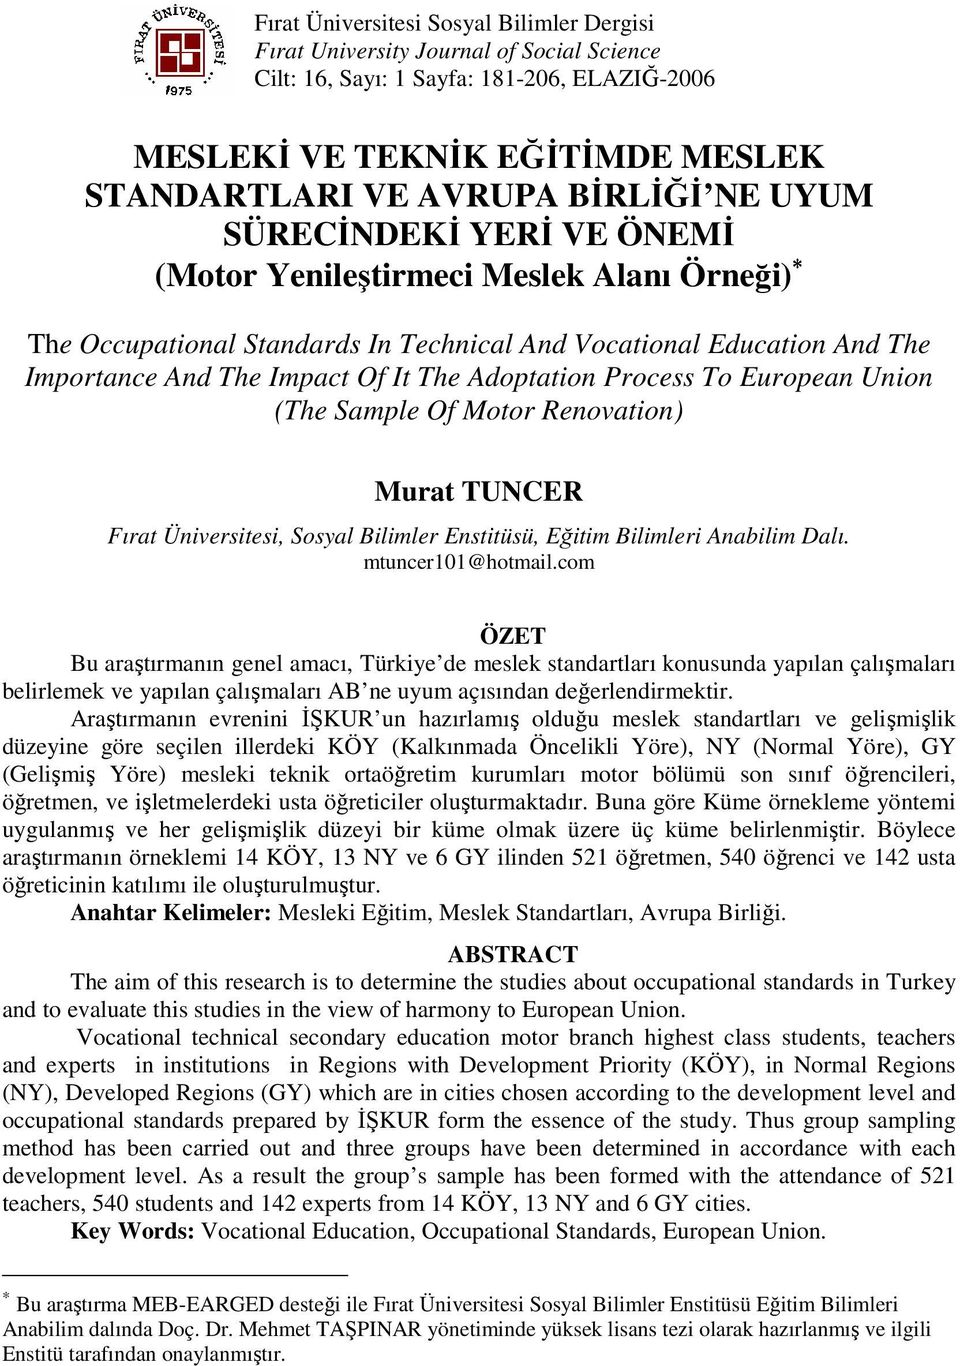 Process To European Union (The Sample Of Motor Renovation) Murat TUNCER Fırat Üniversitesi, Sosyal Bilimler Enstitüsü, Eğitim Bilimleri Anabilim Dalı. mtuncer101@hotmail.